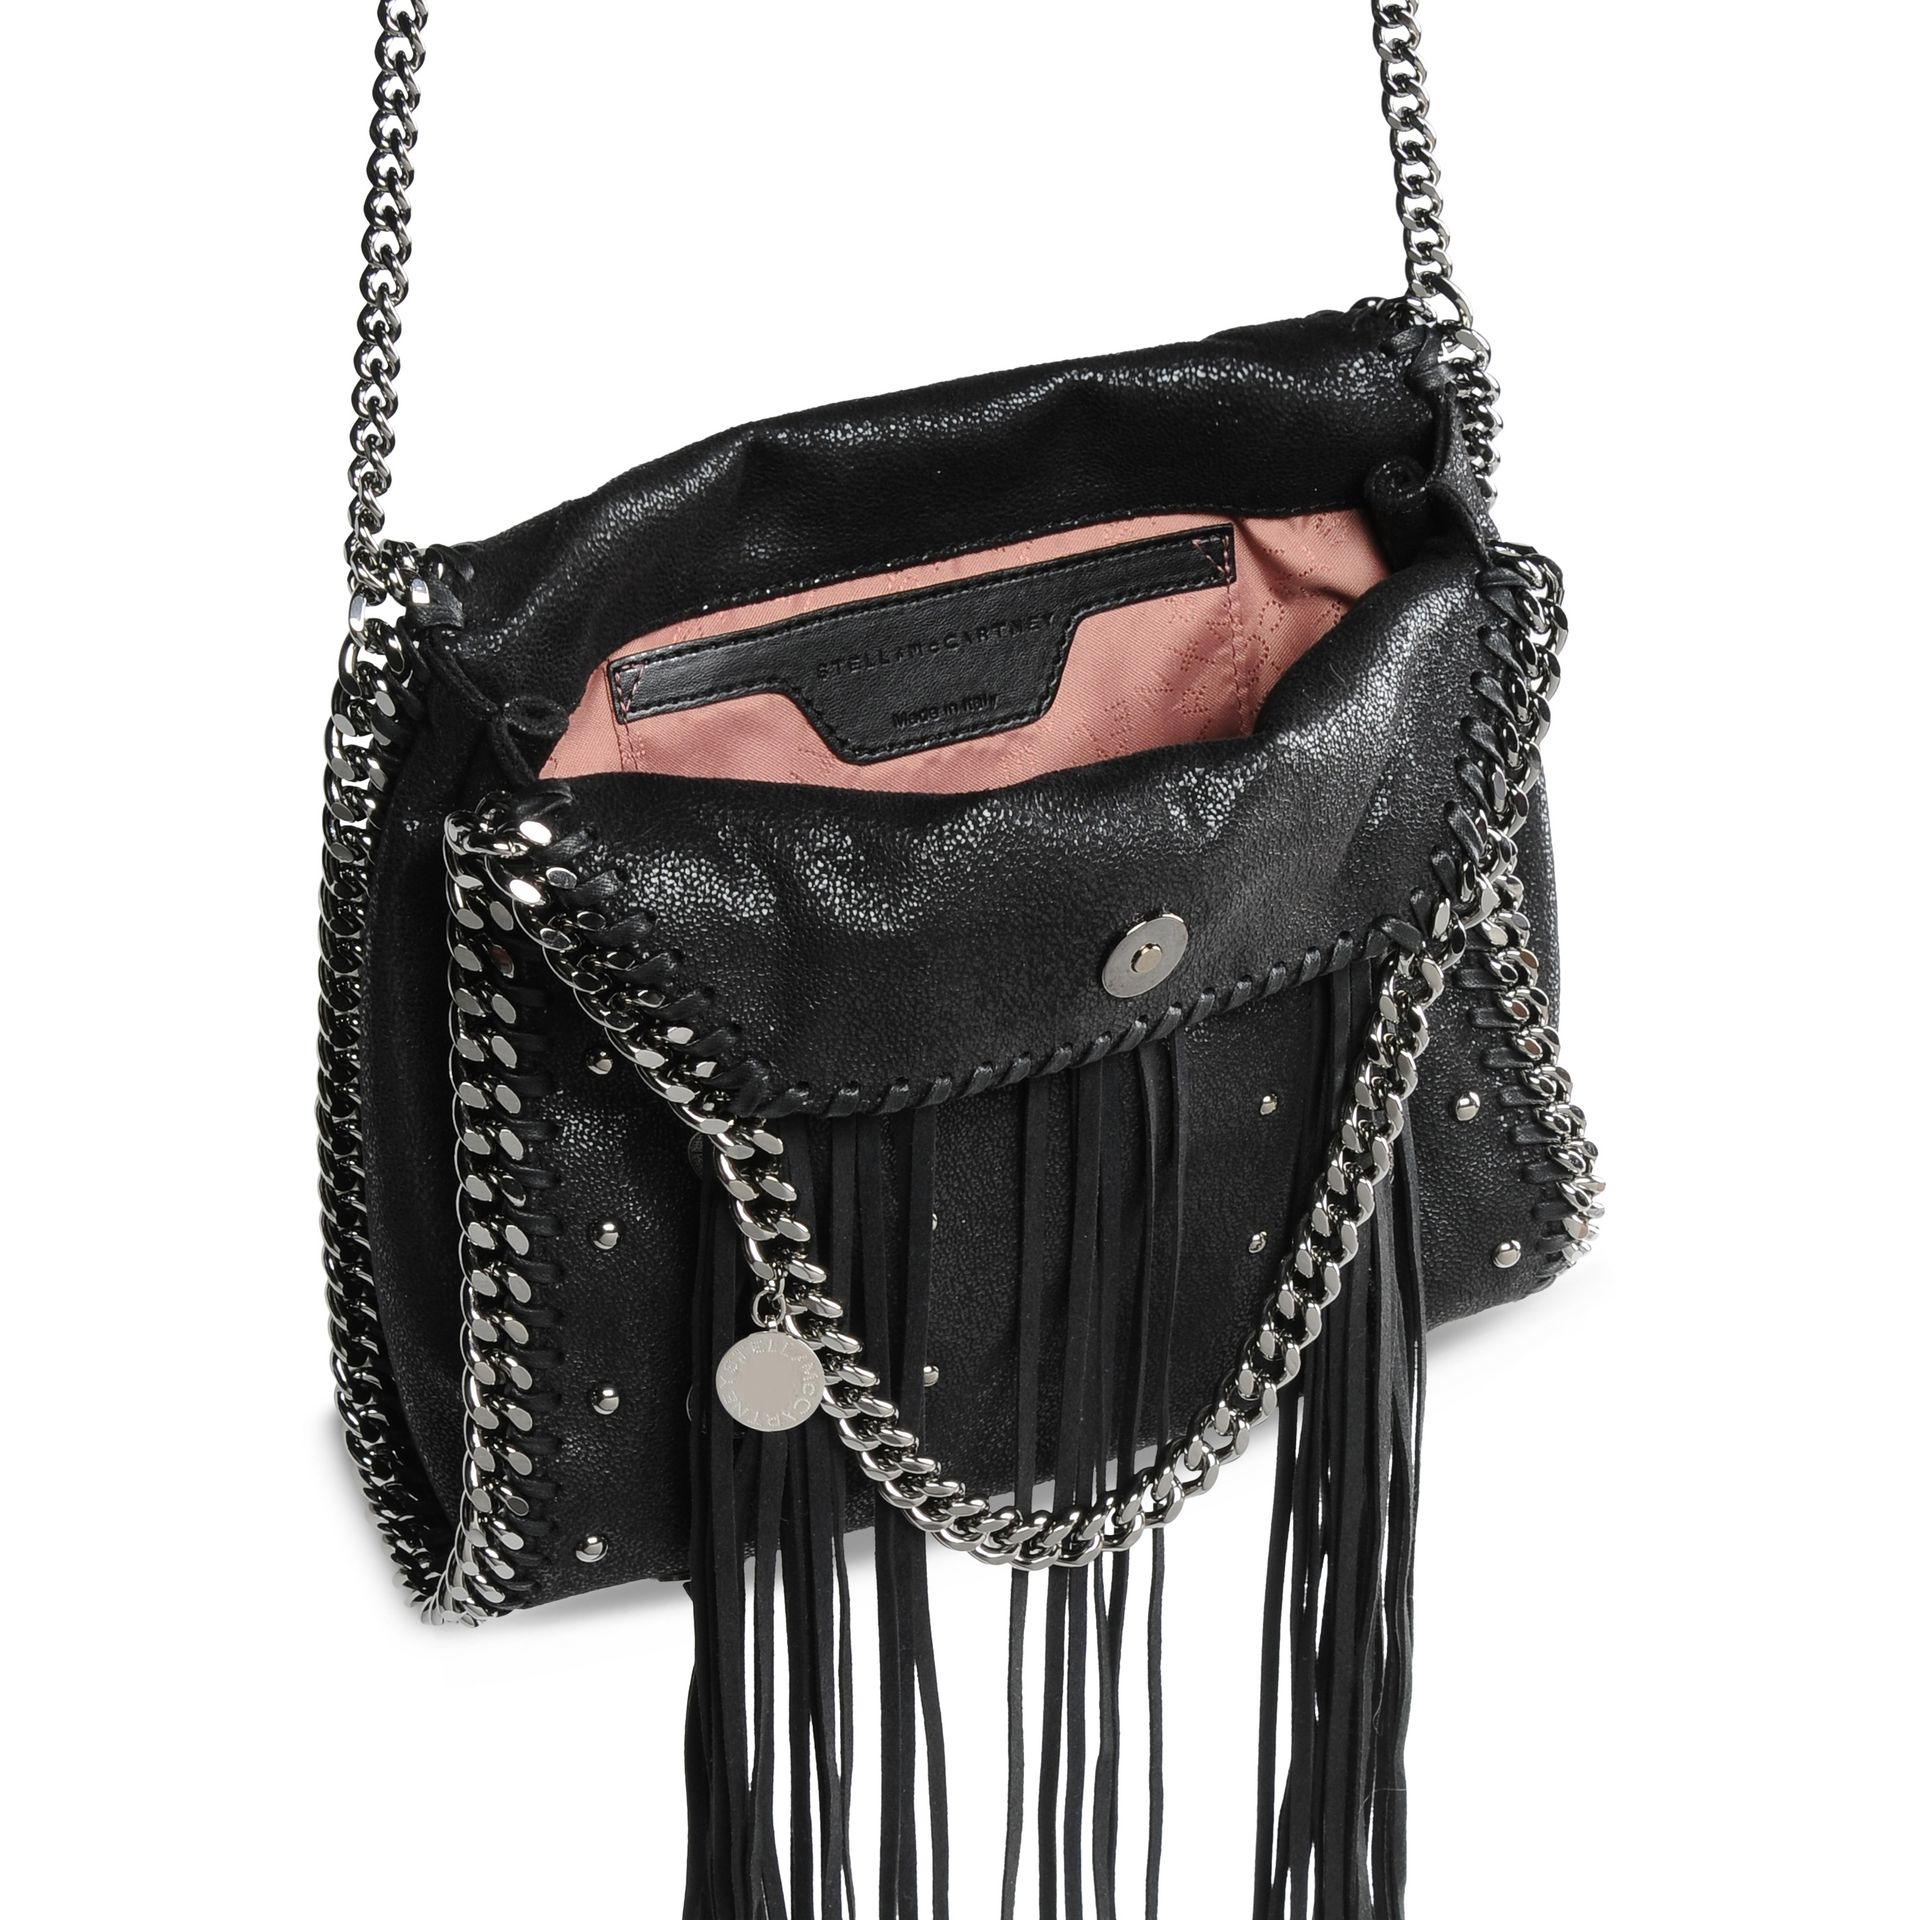 64caa24649f Lyst - Stella McCartney Falabella Shaggy Deer Biker Mini Tote in Black